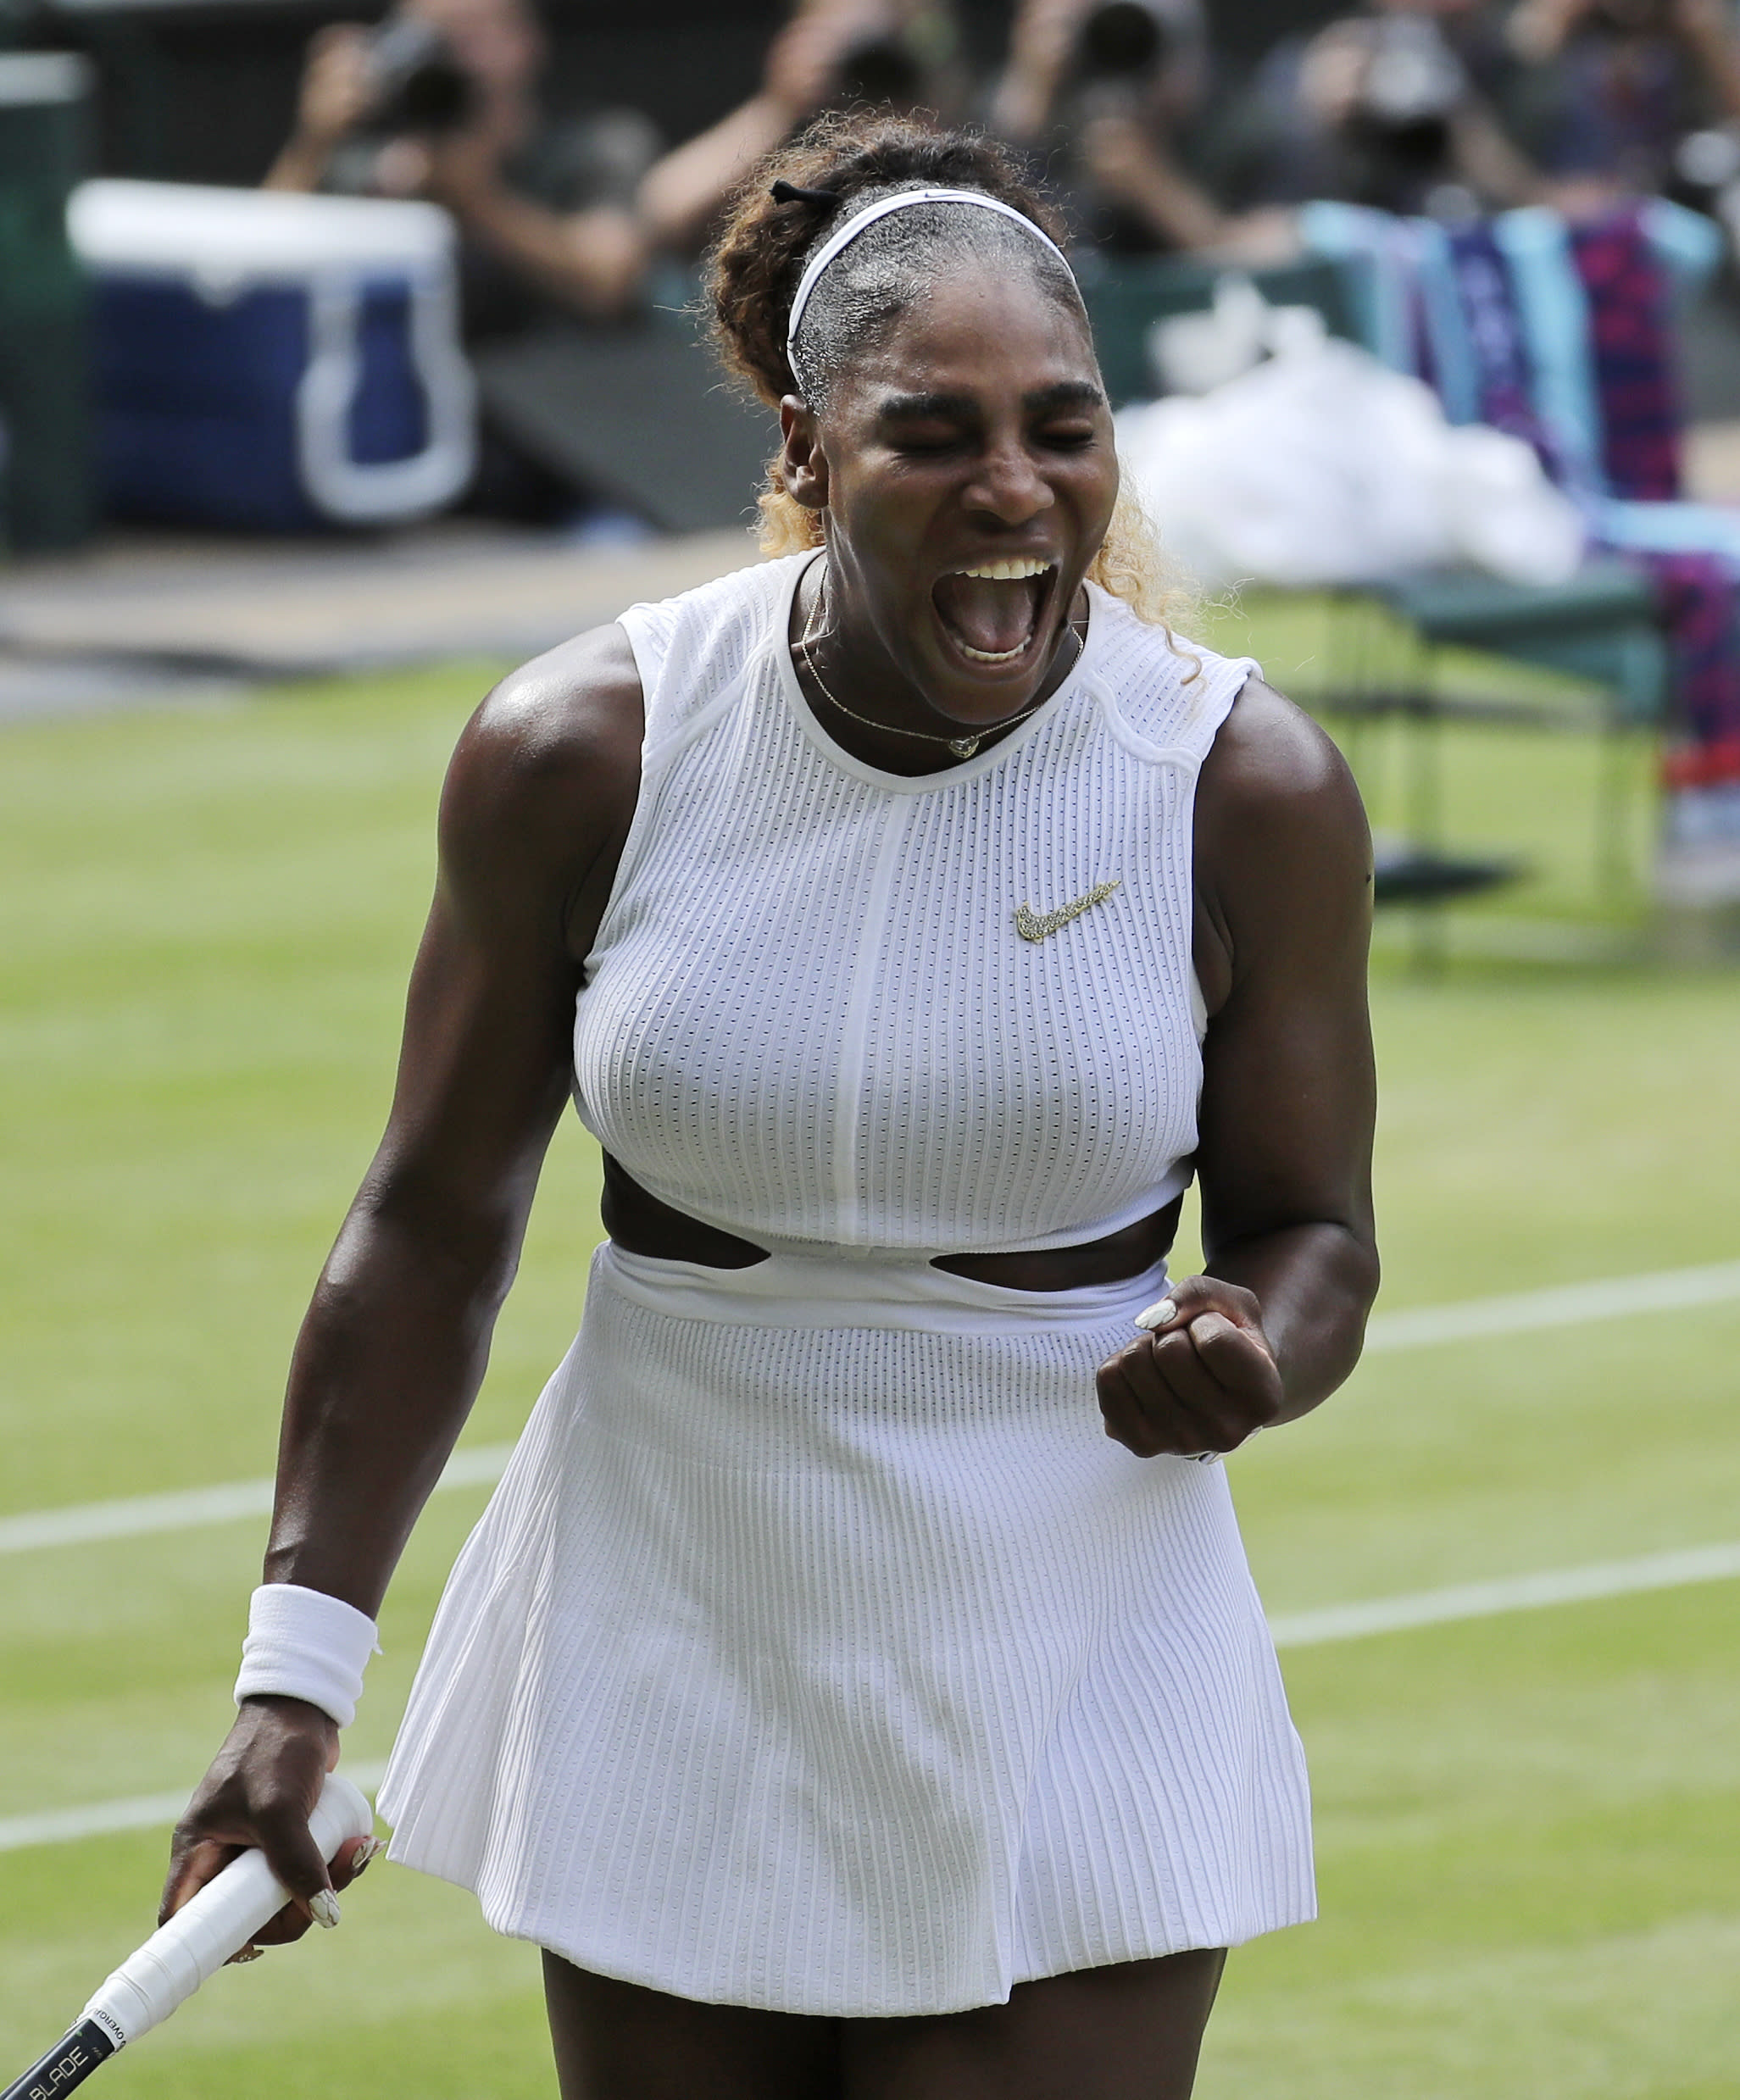 Wimbledon 2019: How to watch Serena Williams vs